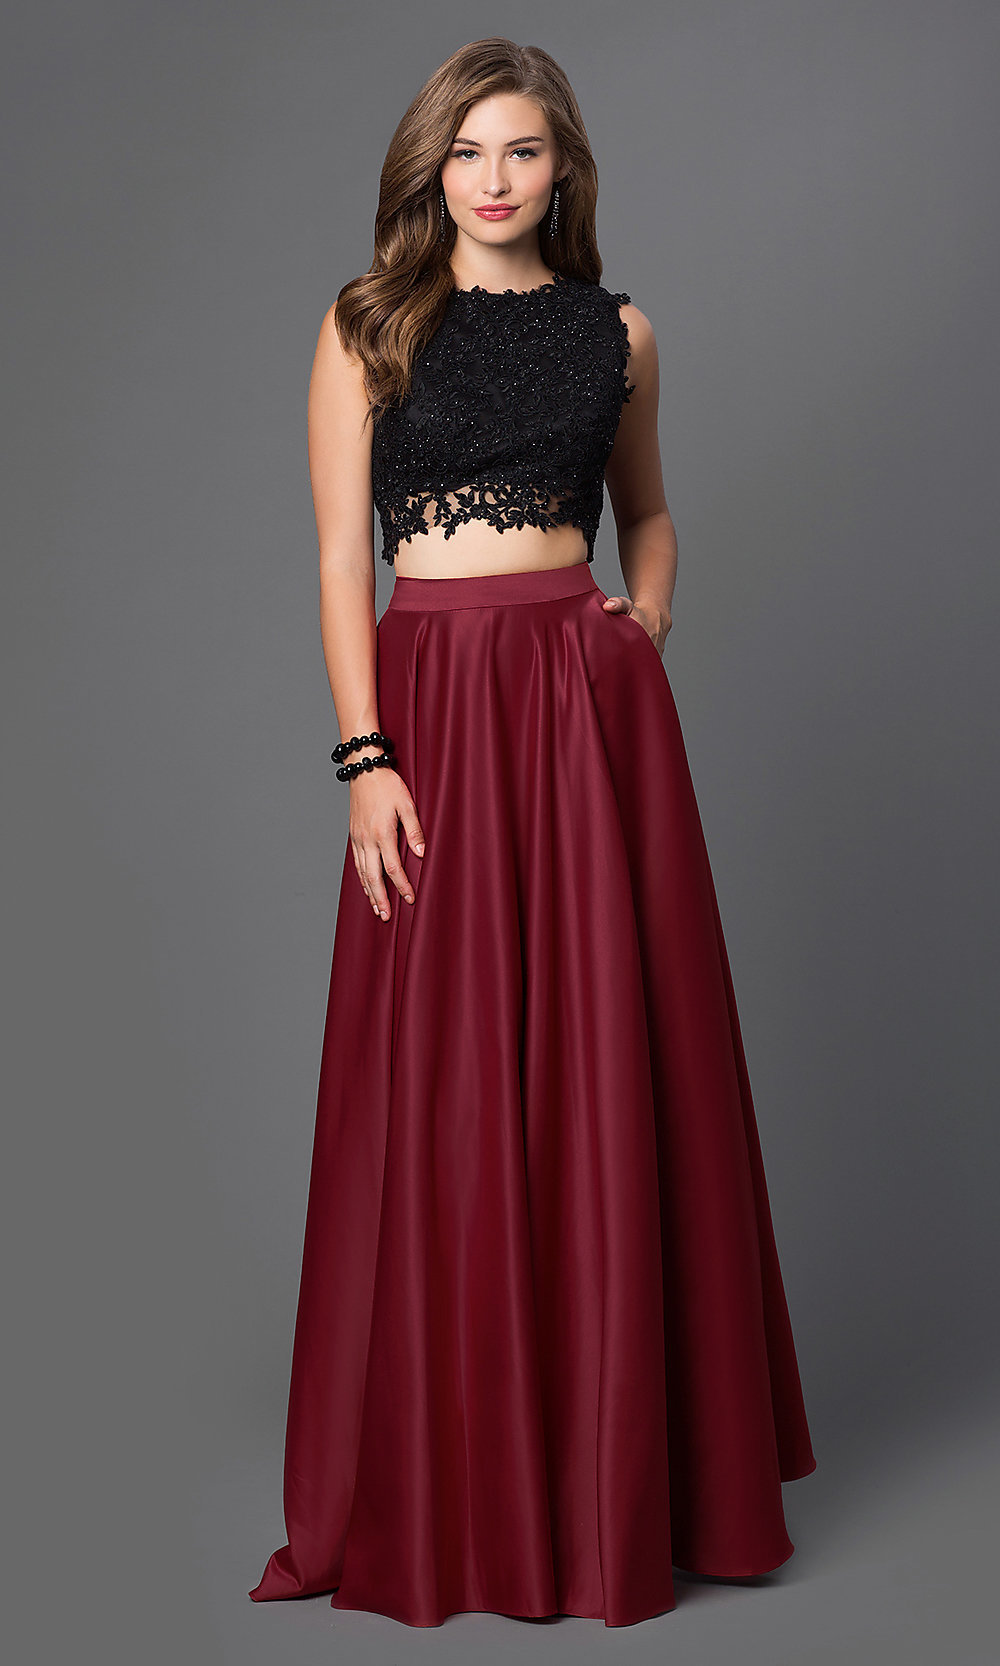 54bec75a022 Two-Piece Prom Dress with Lace Top - PromGirl